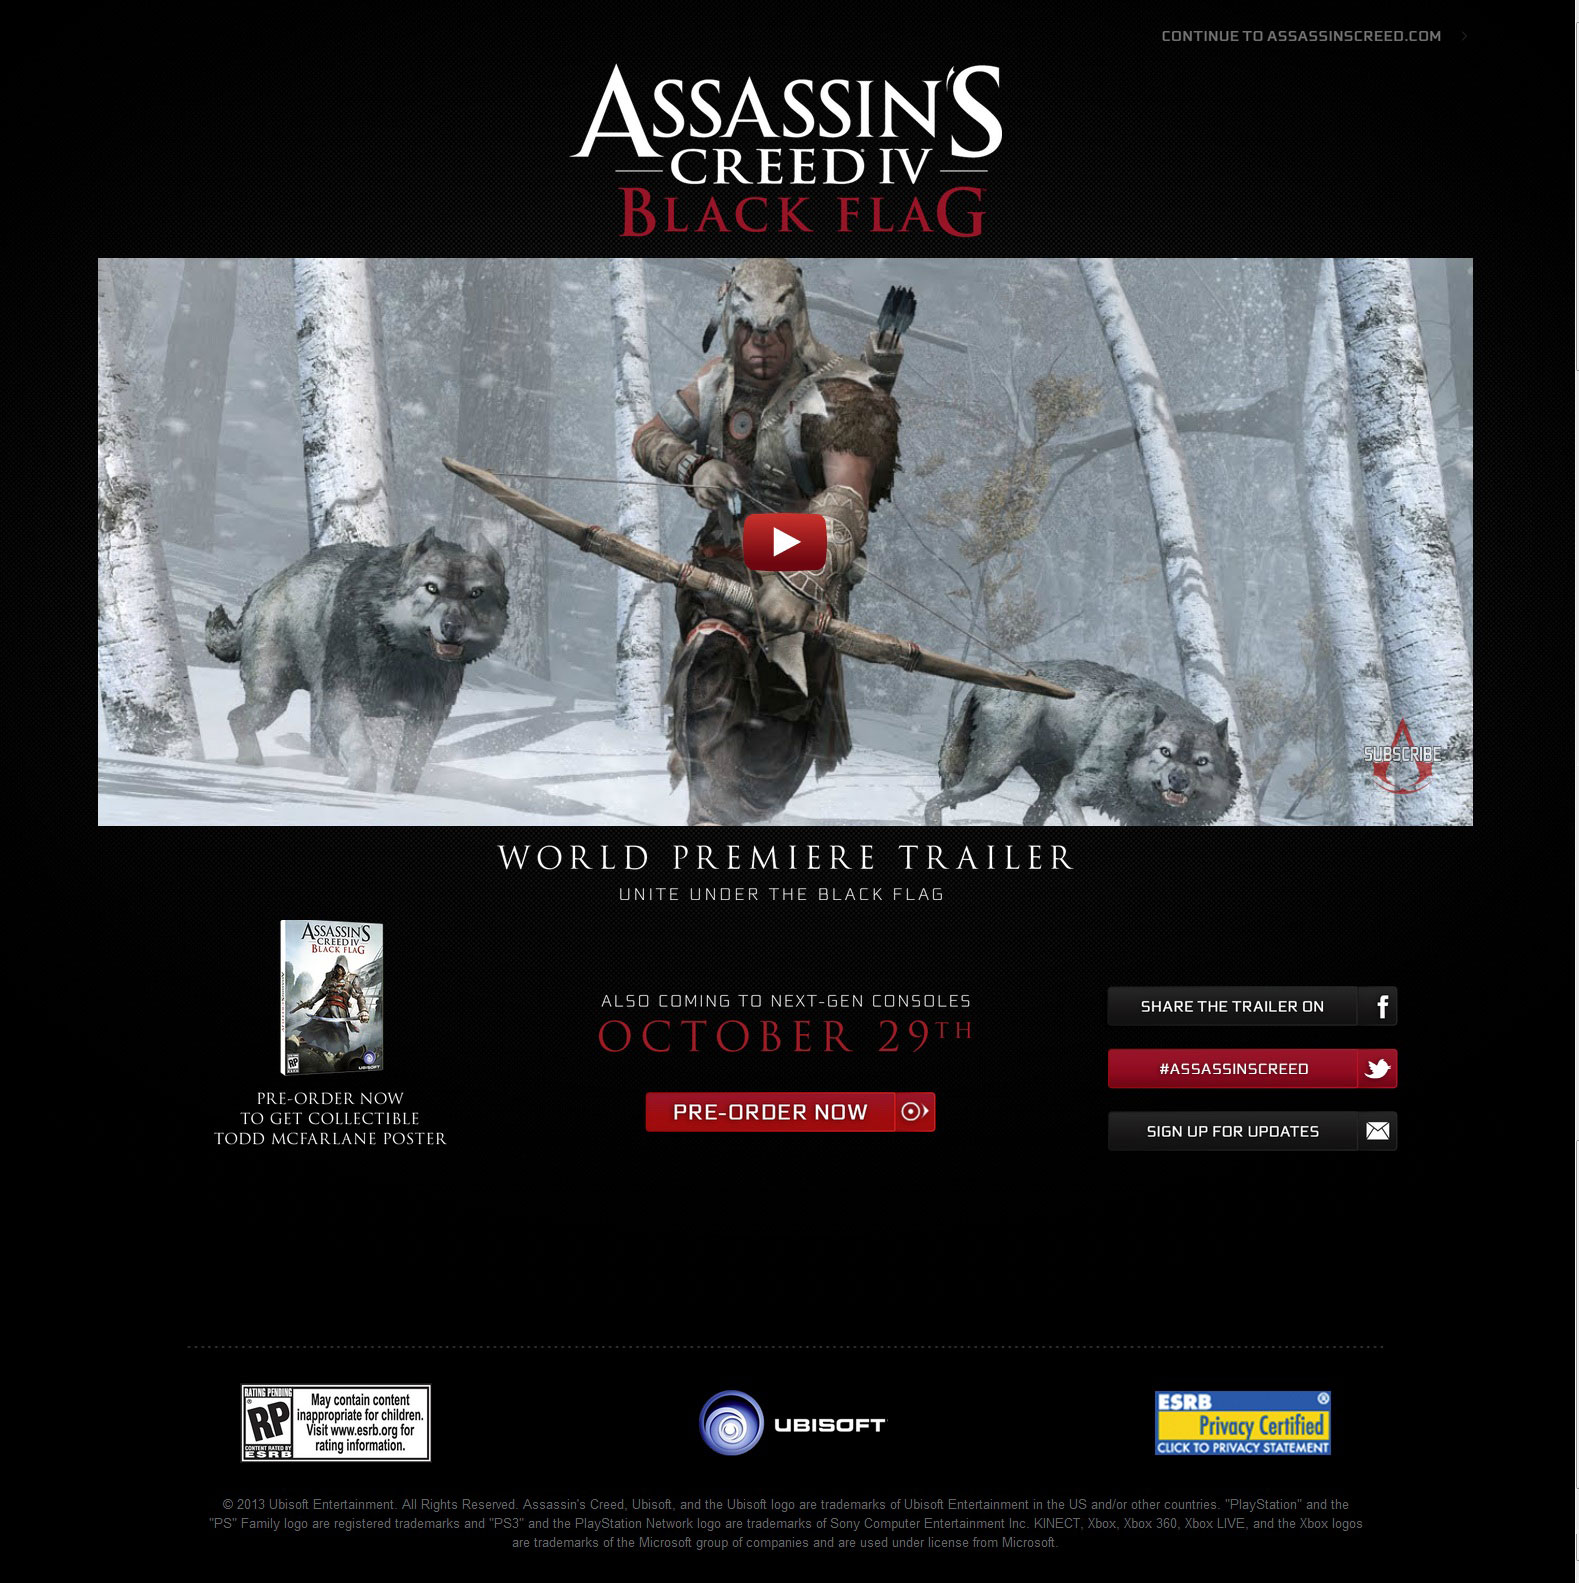 Assassins Creed IV Black Flag Release Date and Next-Gen Consoles Revealed pic 1